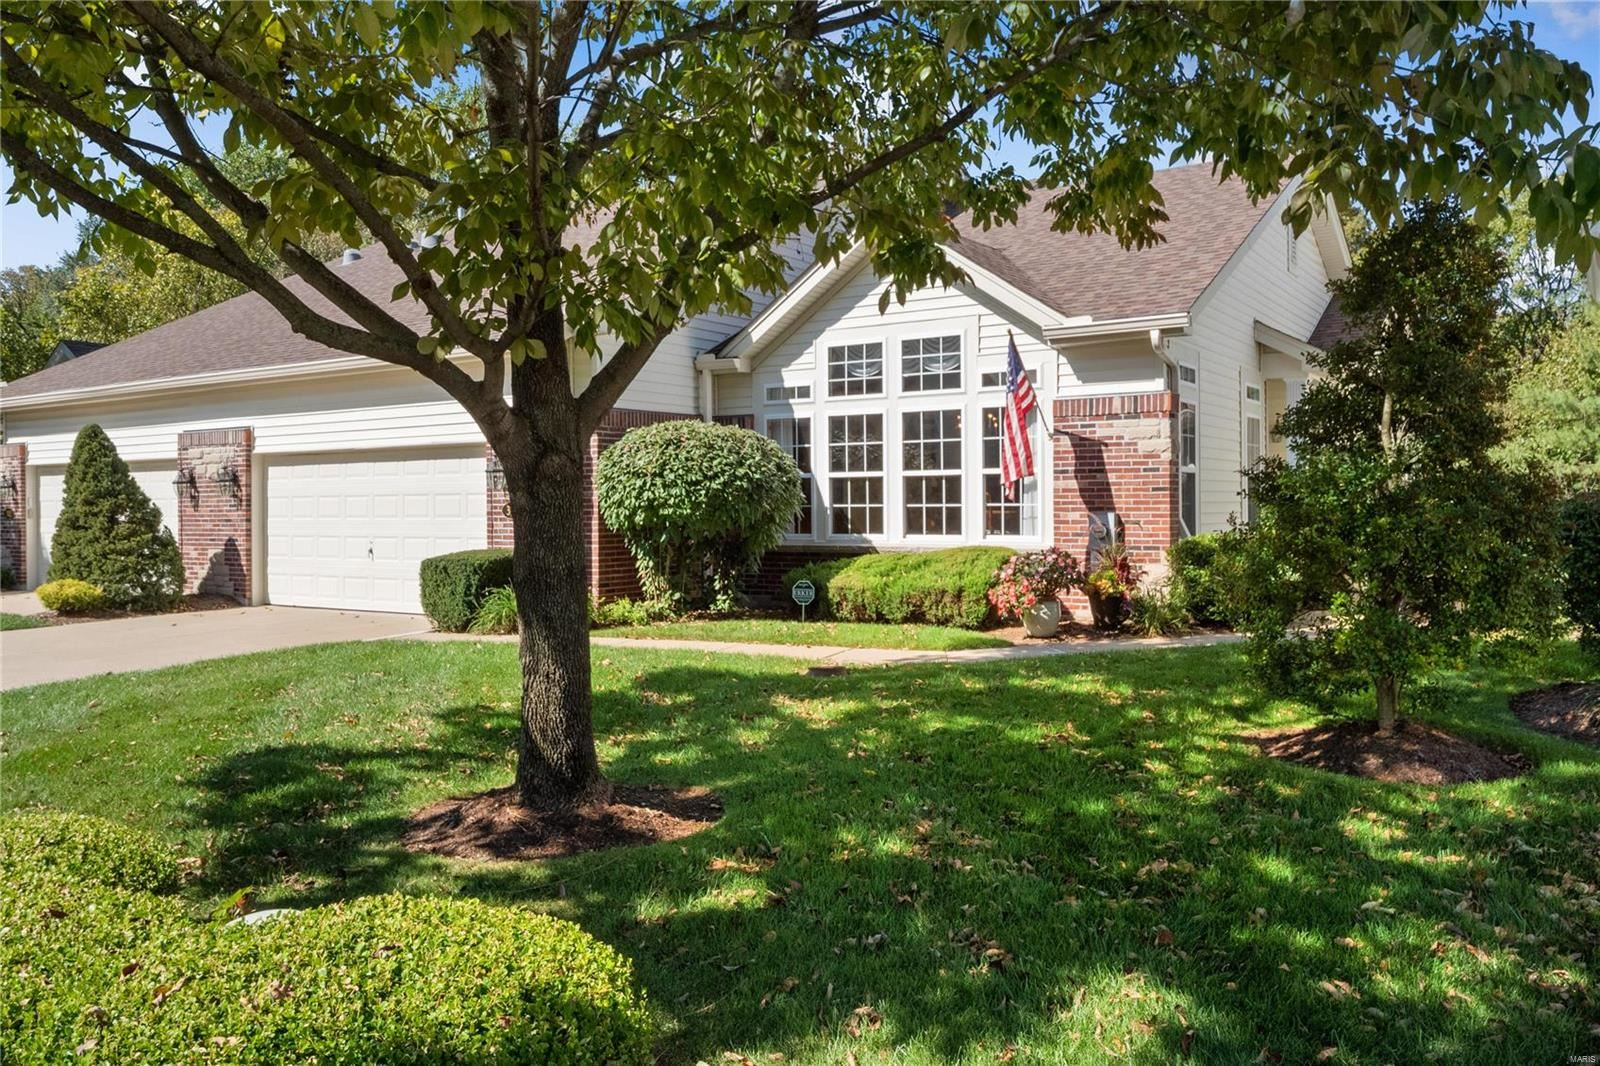 301 Solar Terrace Court, Chesterfield, MO 63017 - MLS#: 21073496